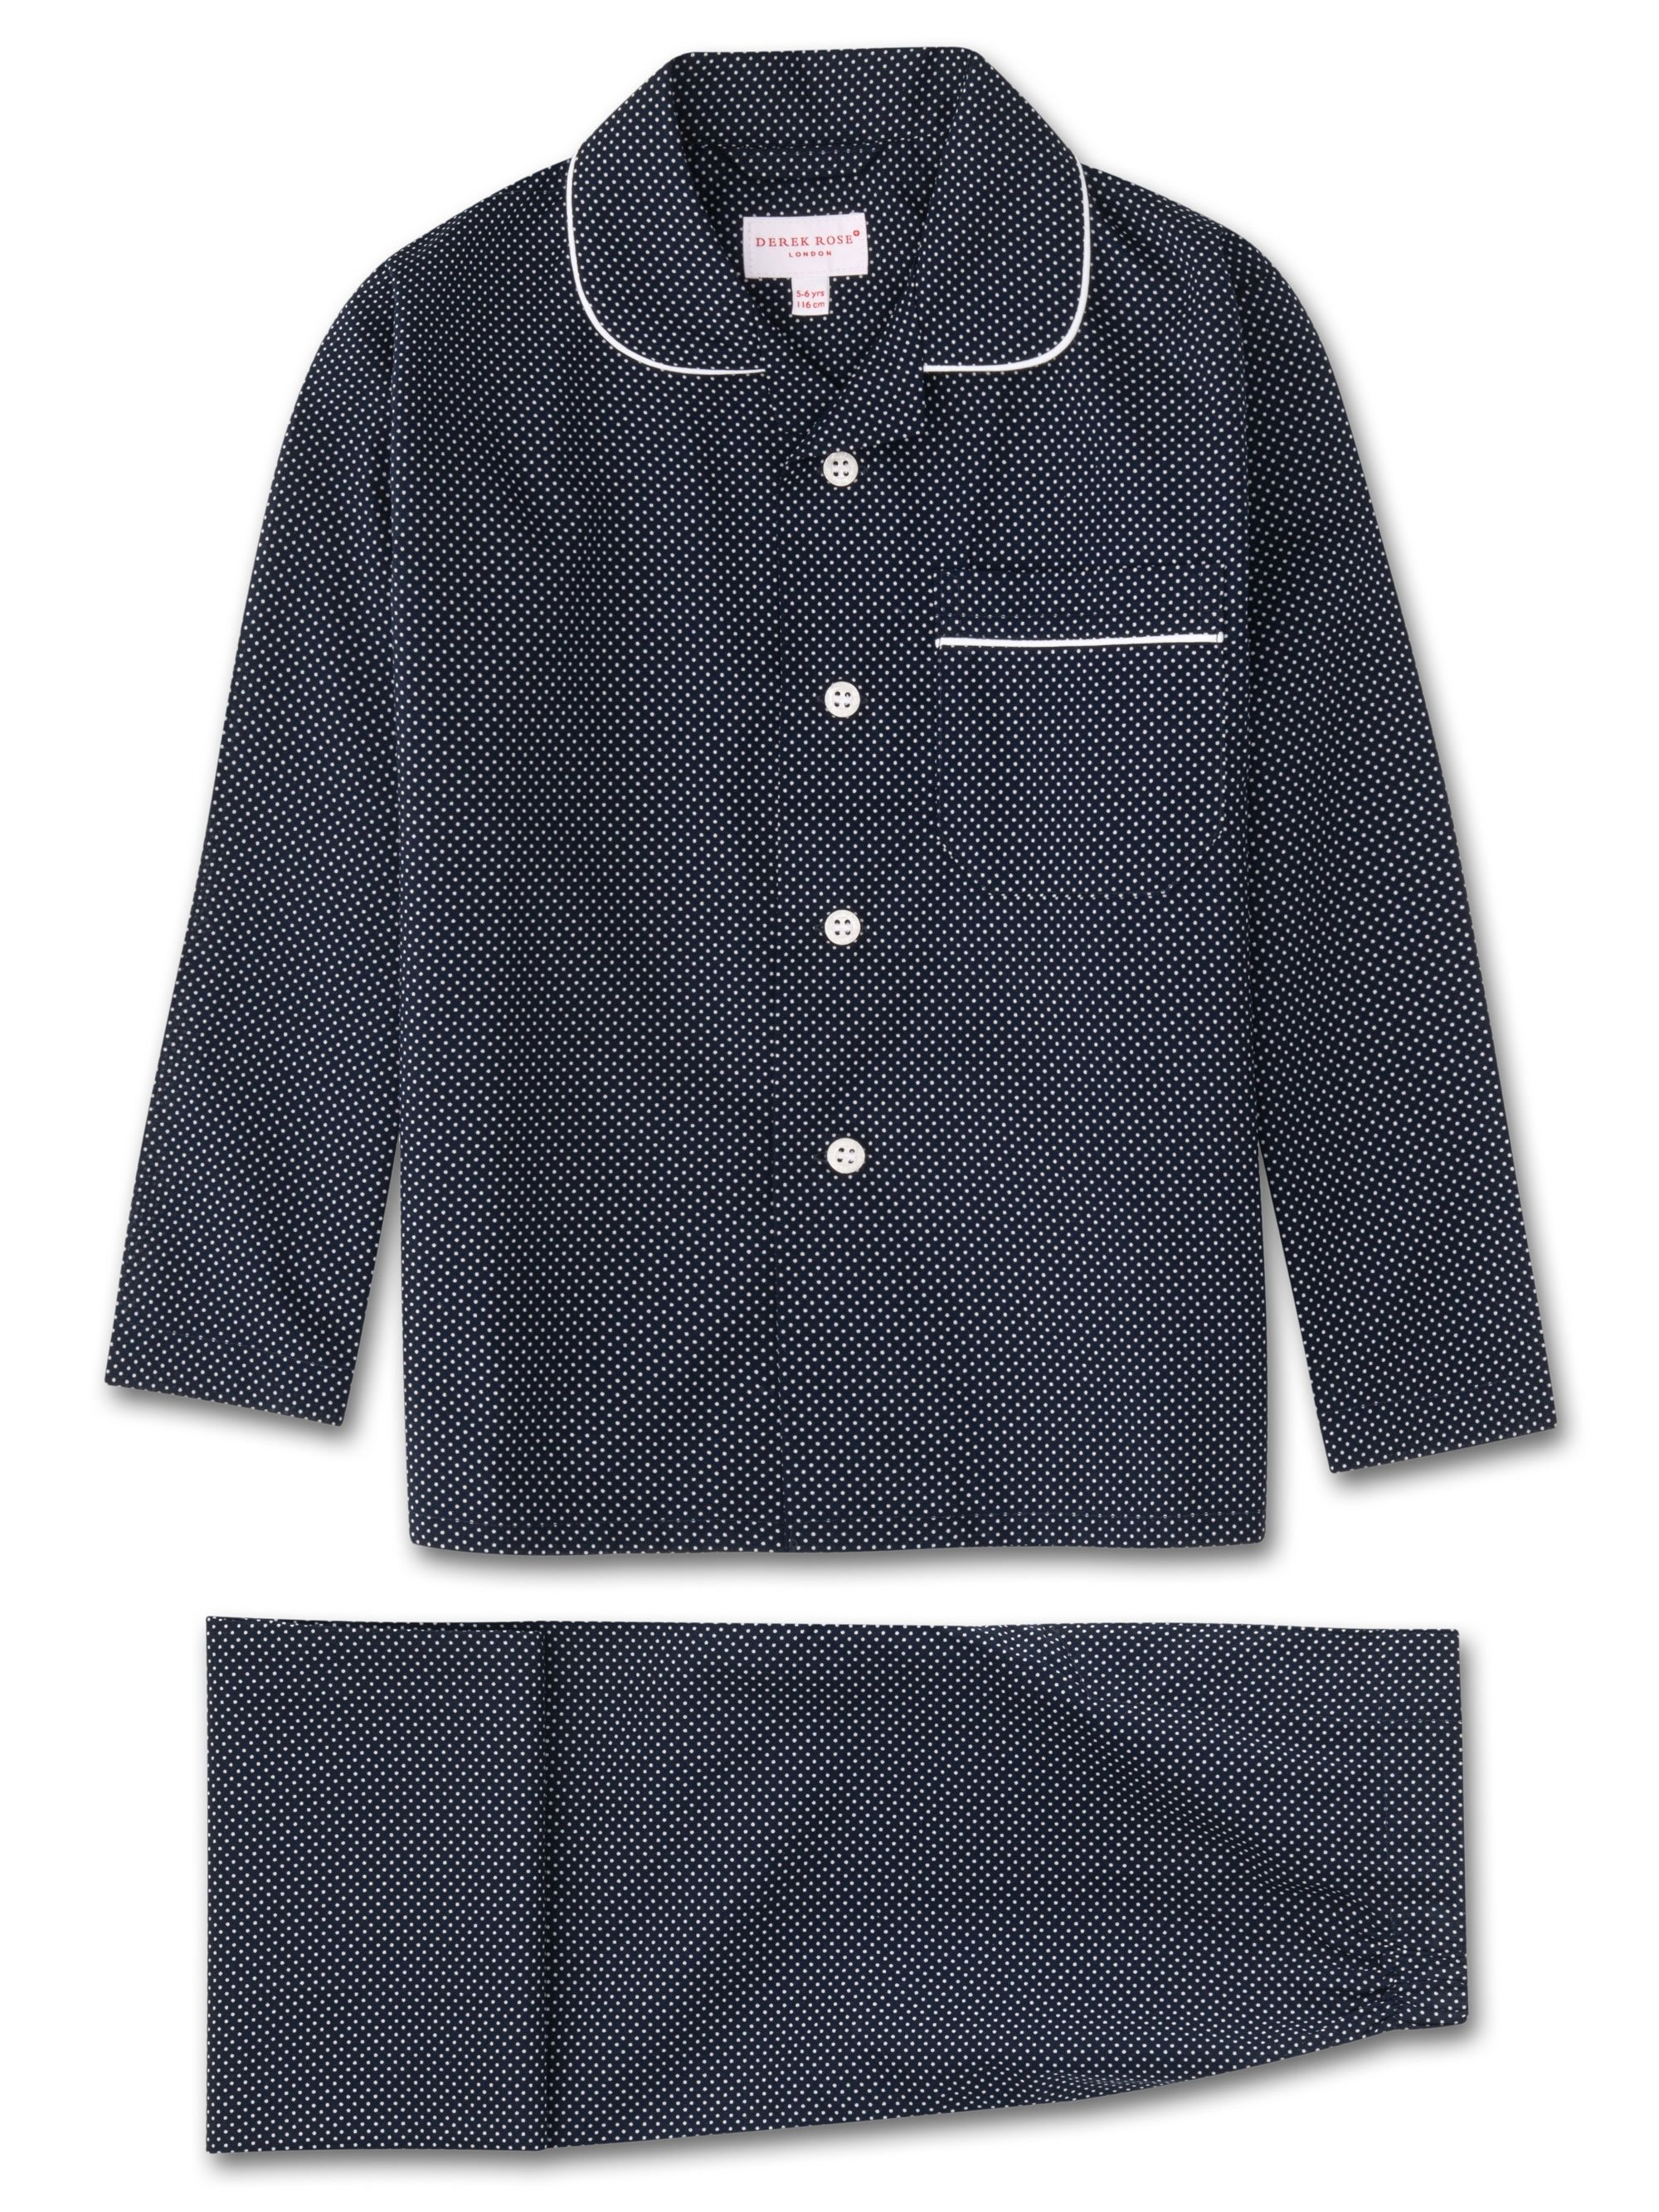 Kids' Pyjamas Plaza 21 Cotton Batiste Navy